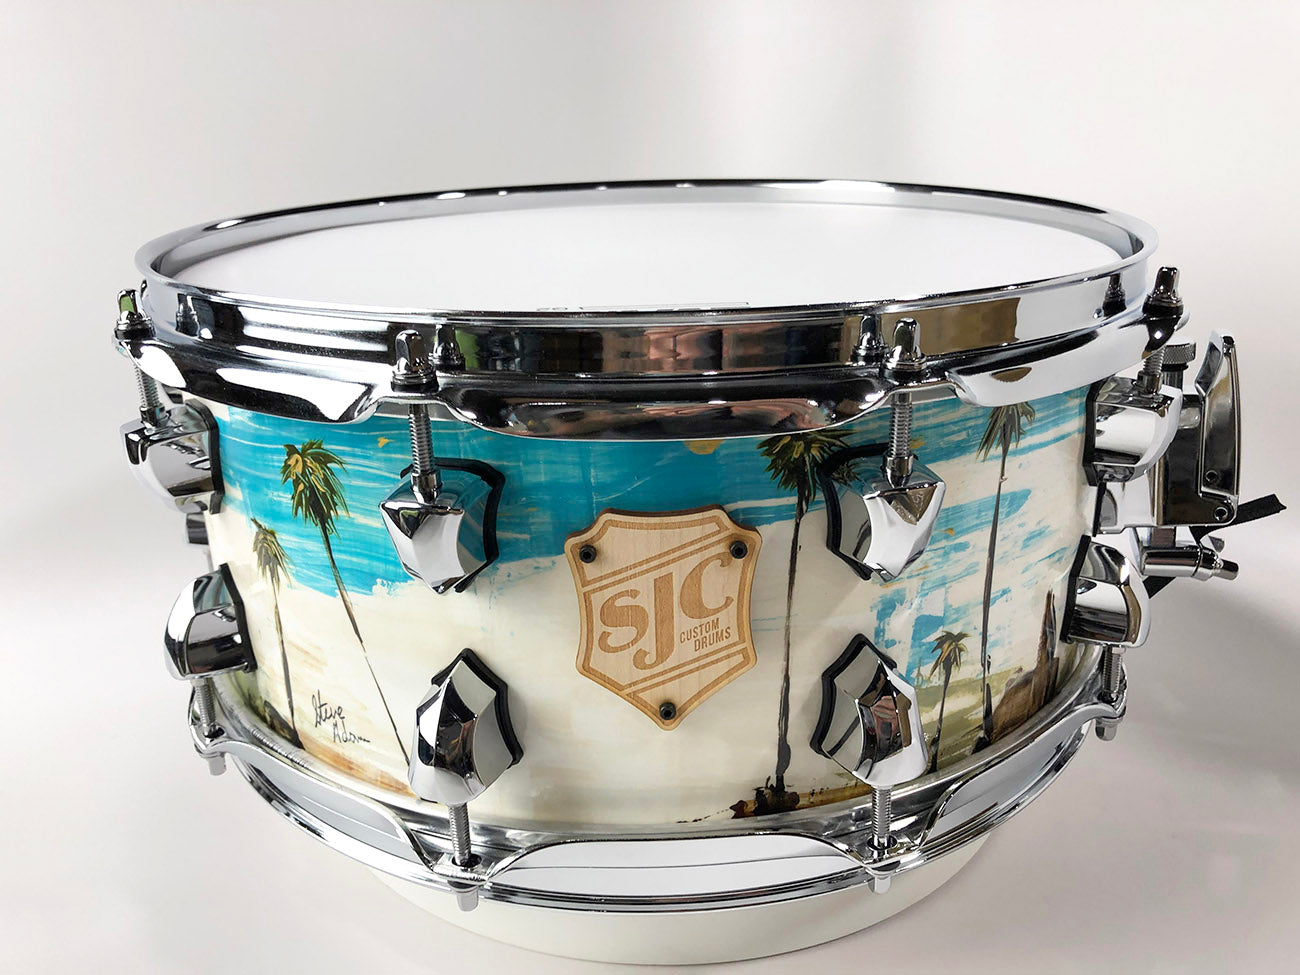 Commemorative Snare Drums